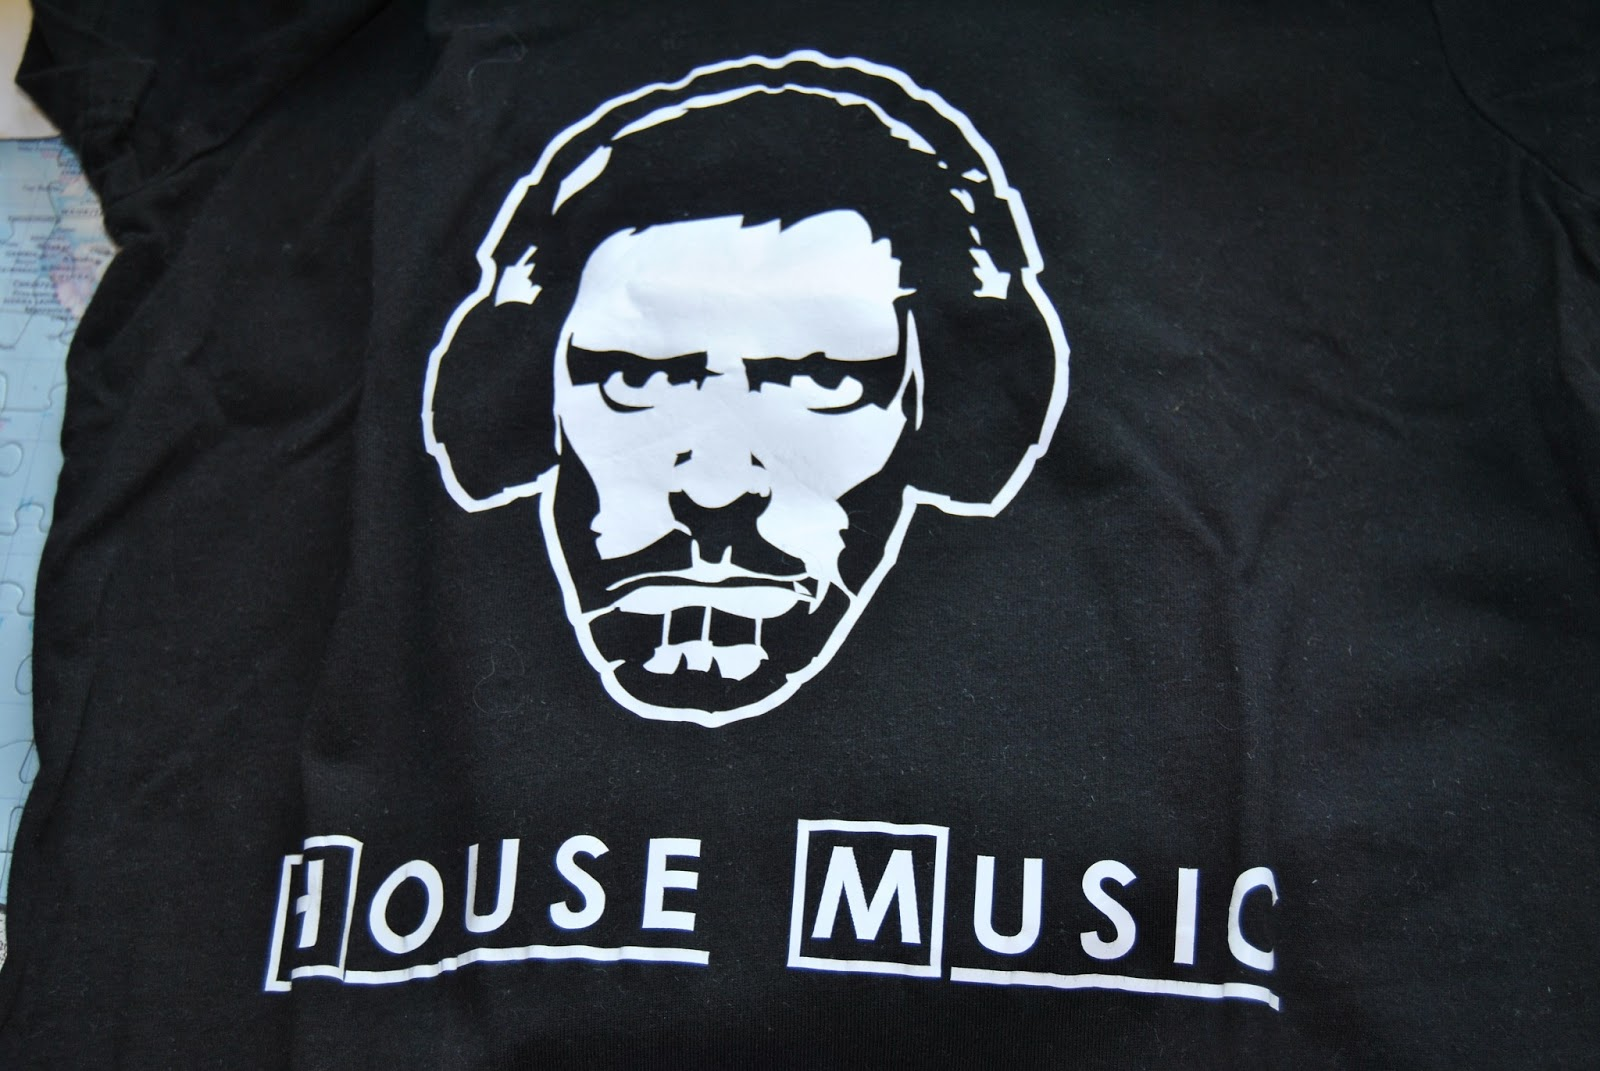 (DR) House music